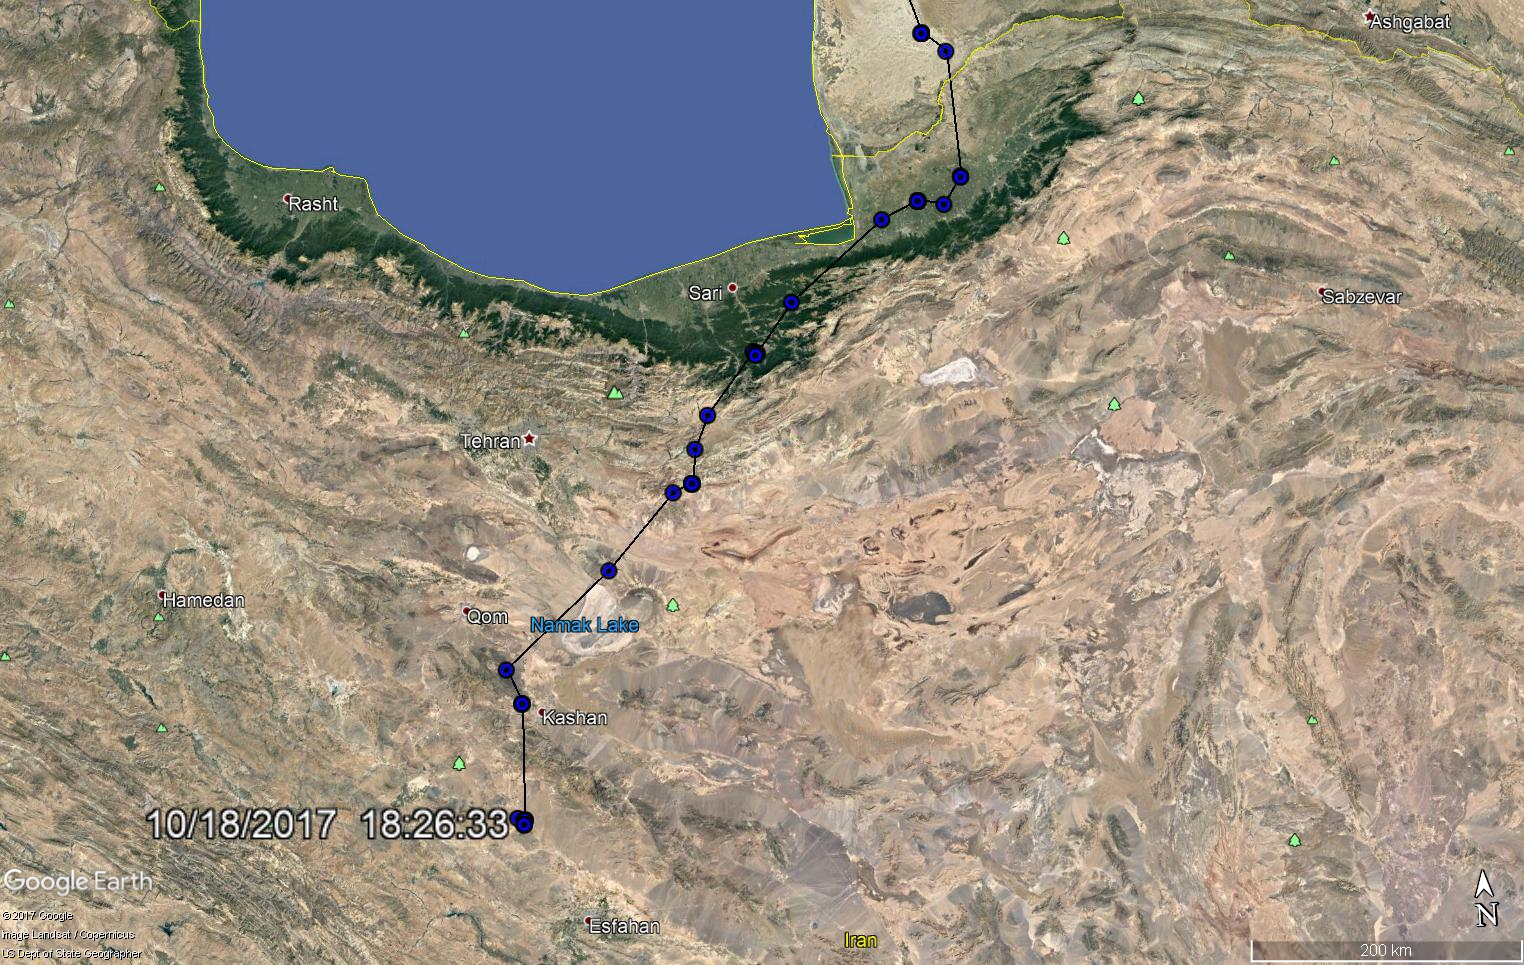 Movements of a Steppe eagle 162312 as